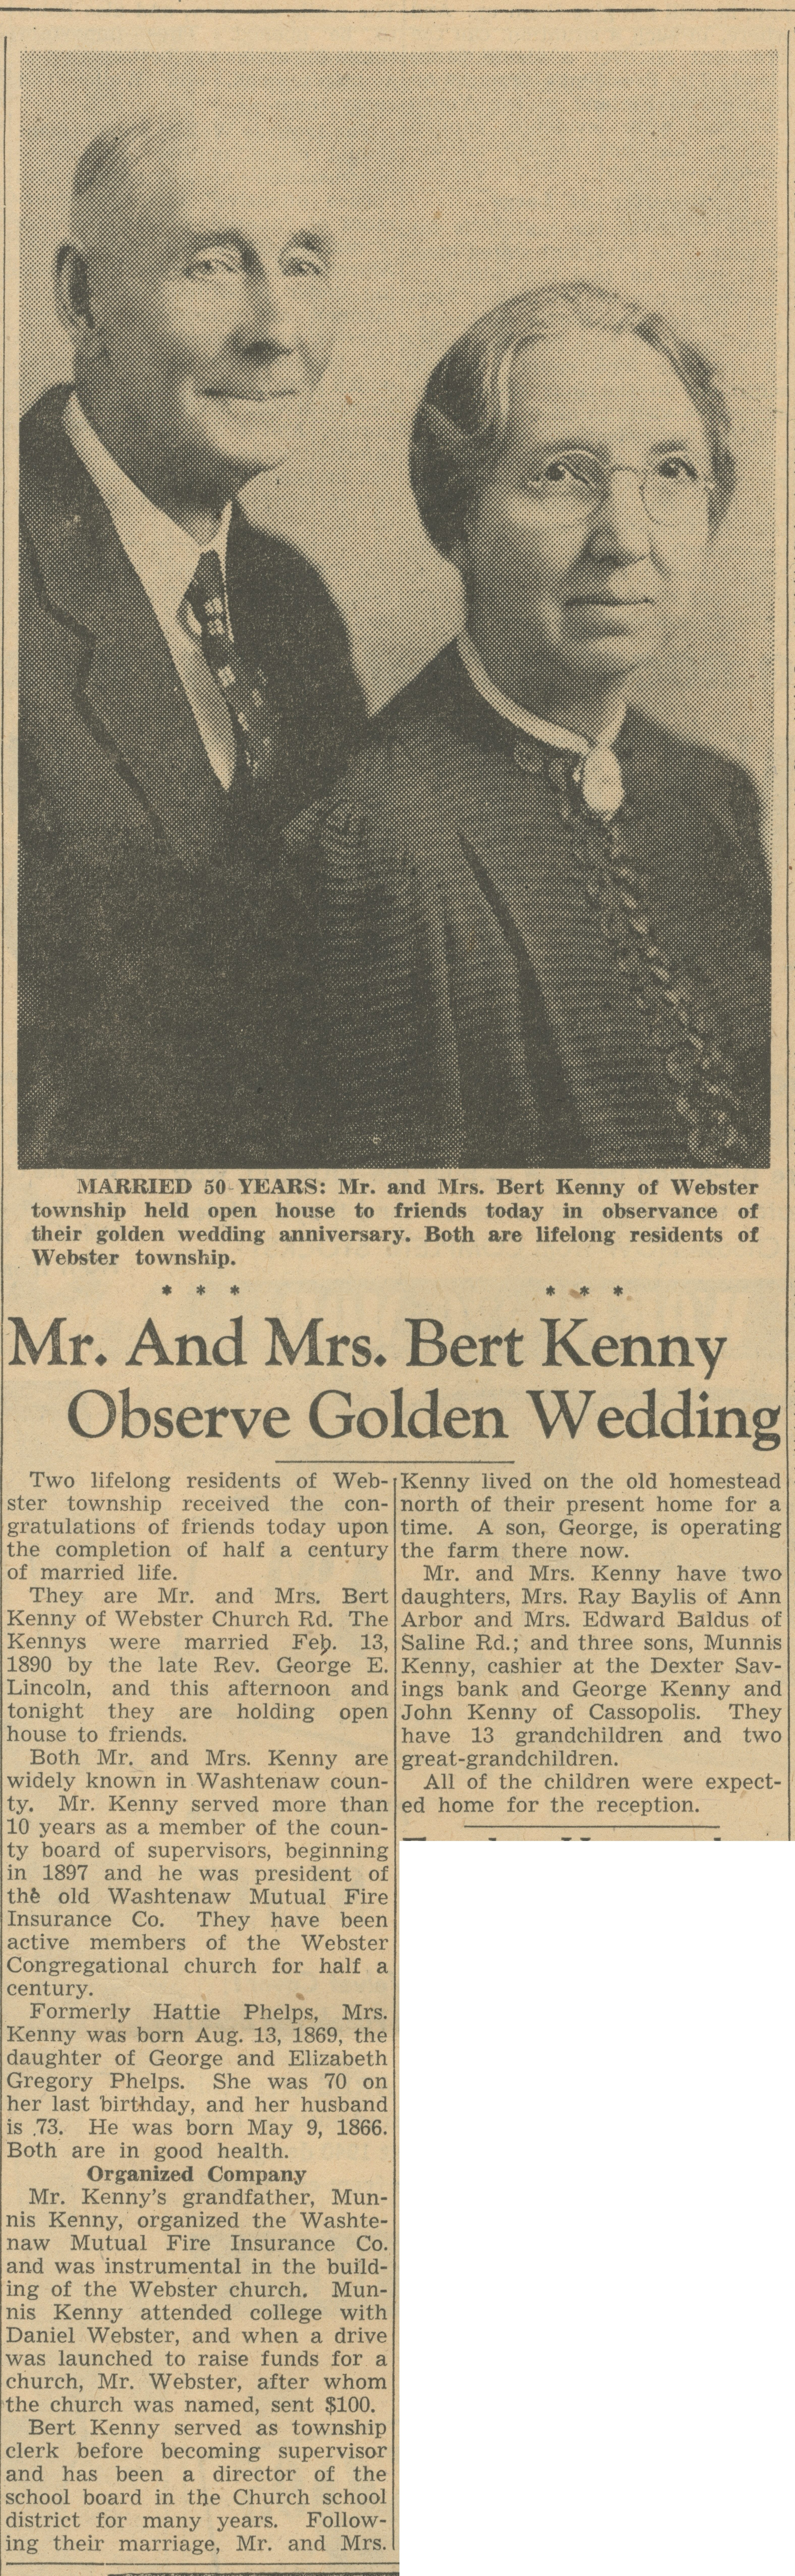 Mr. and Mrs. Bert Kenny Observe Golden Wedding image